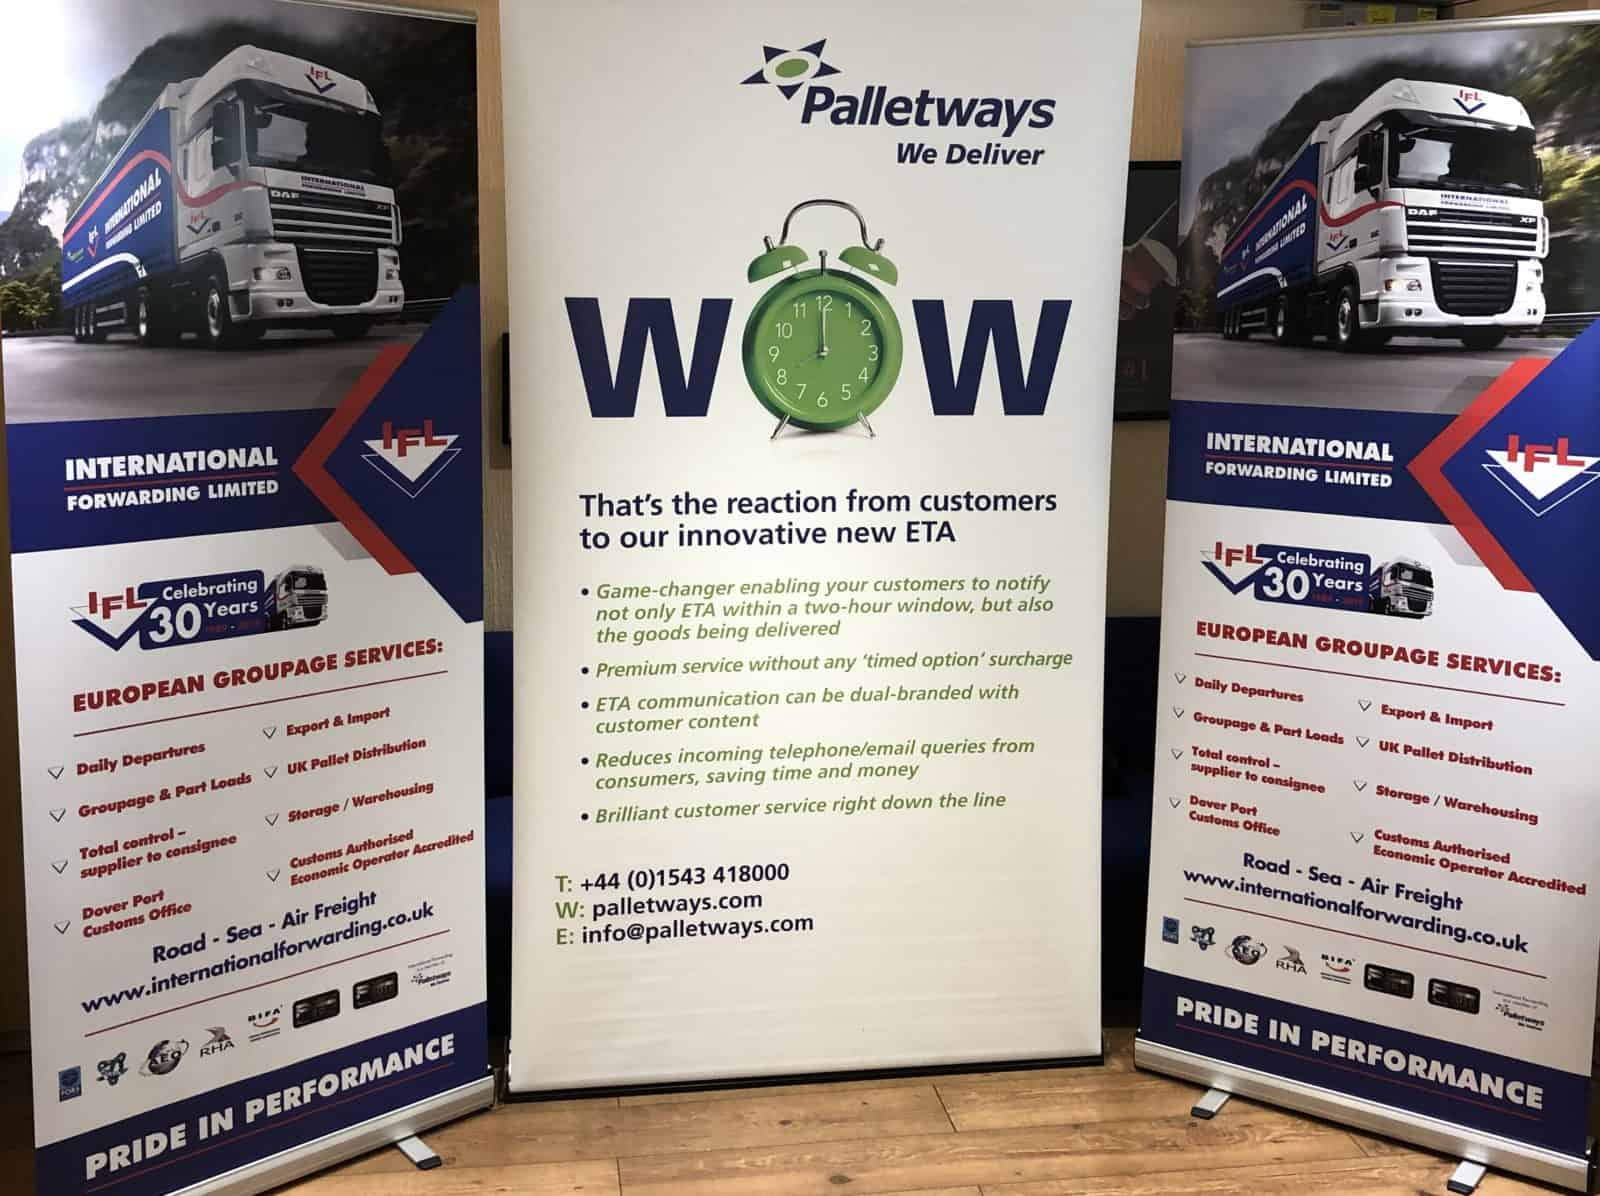 IFL and Palletways banners at the MBN Expo